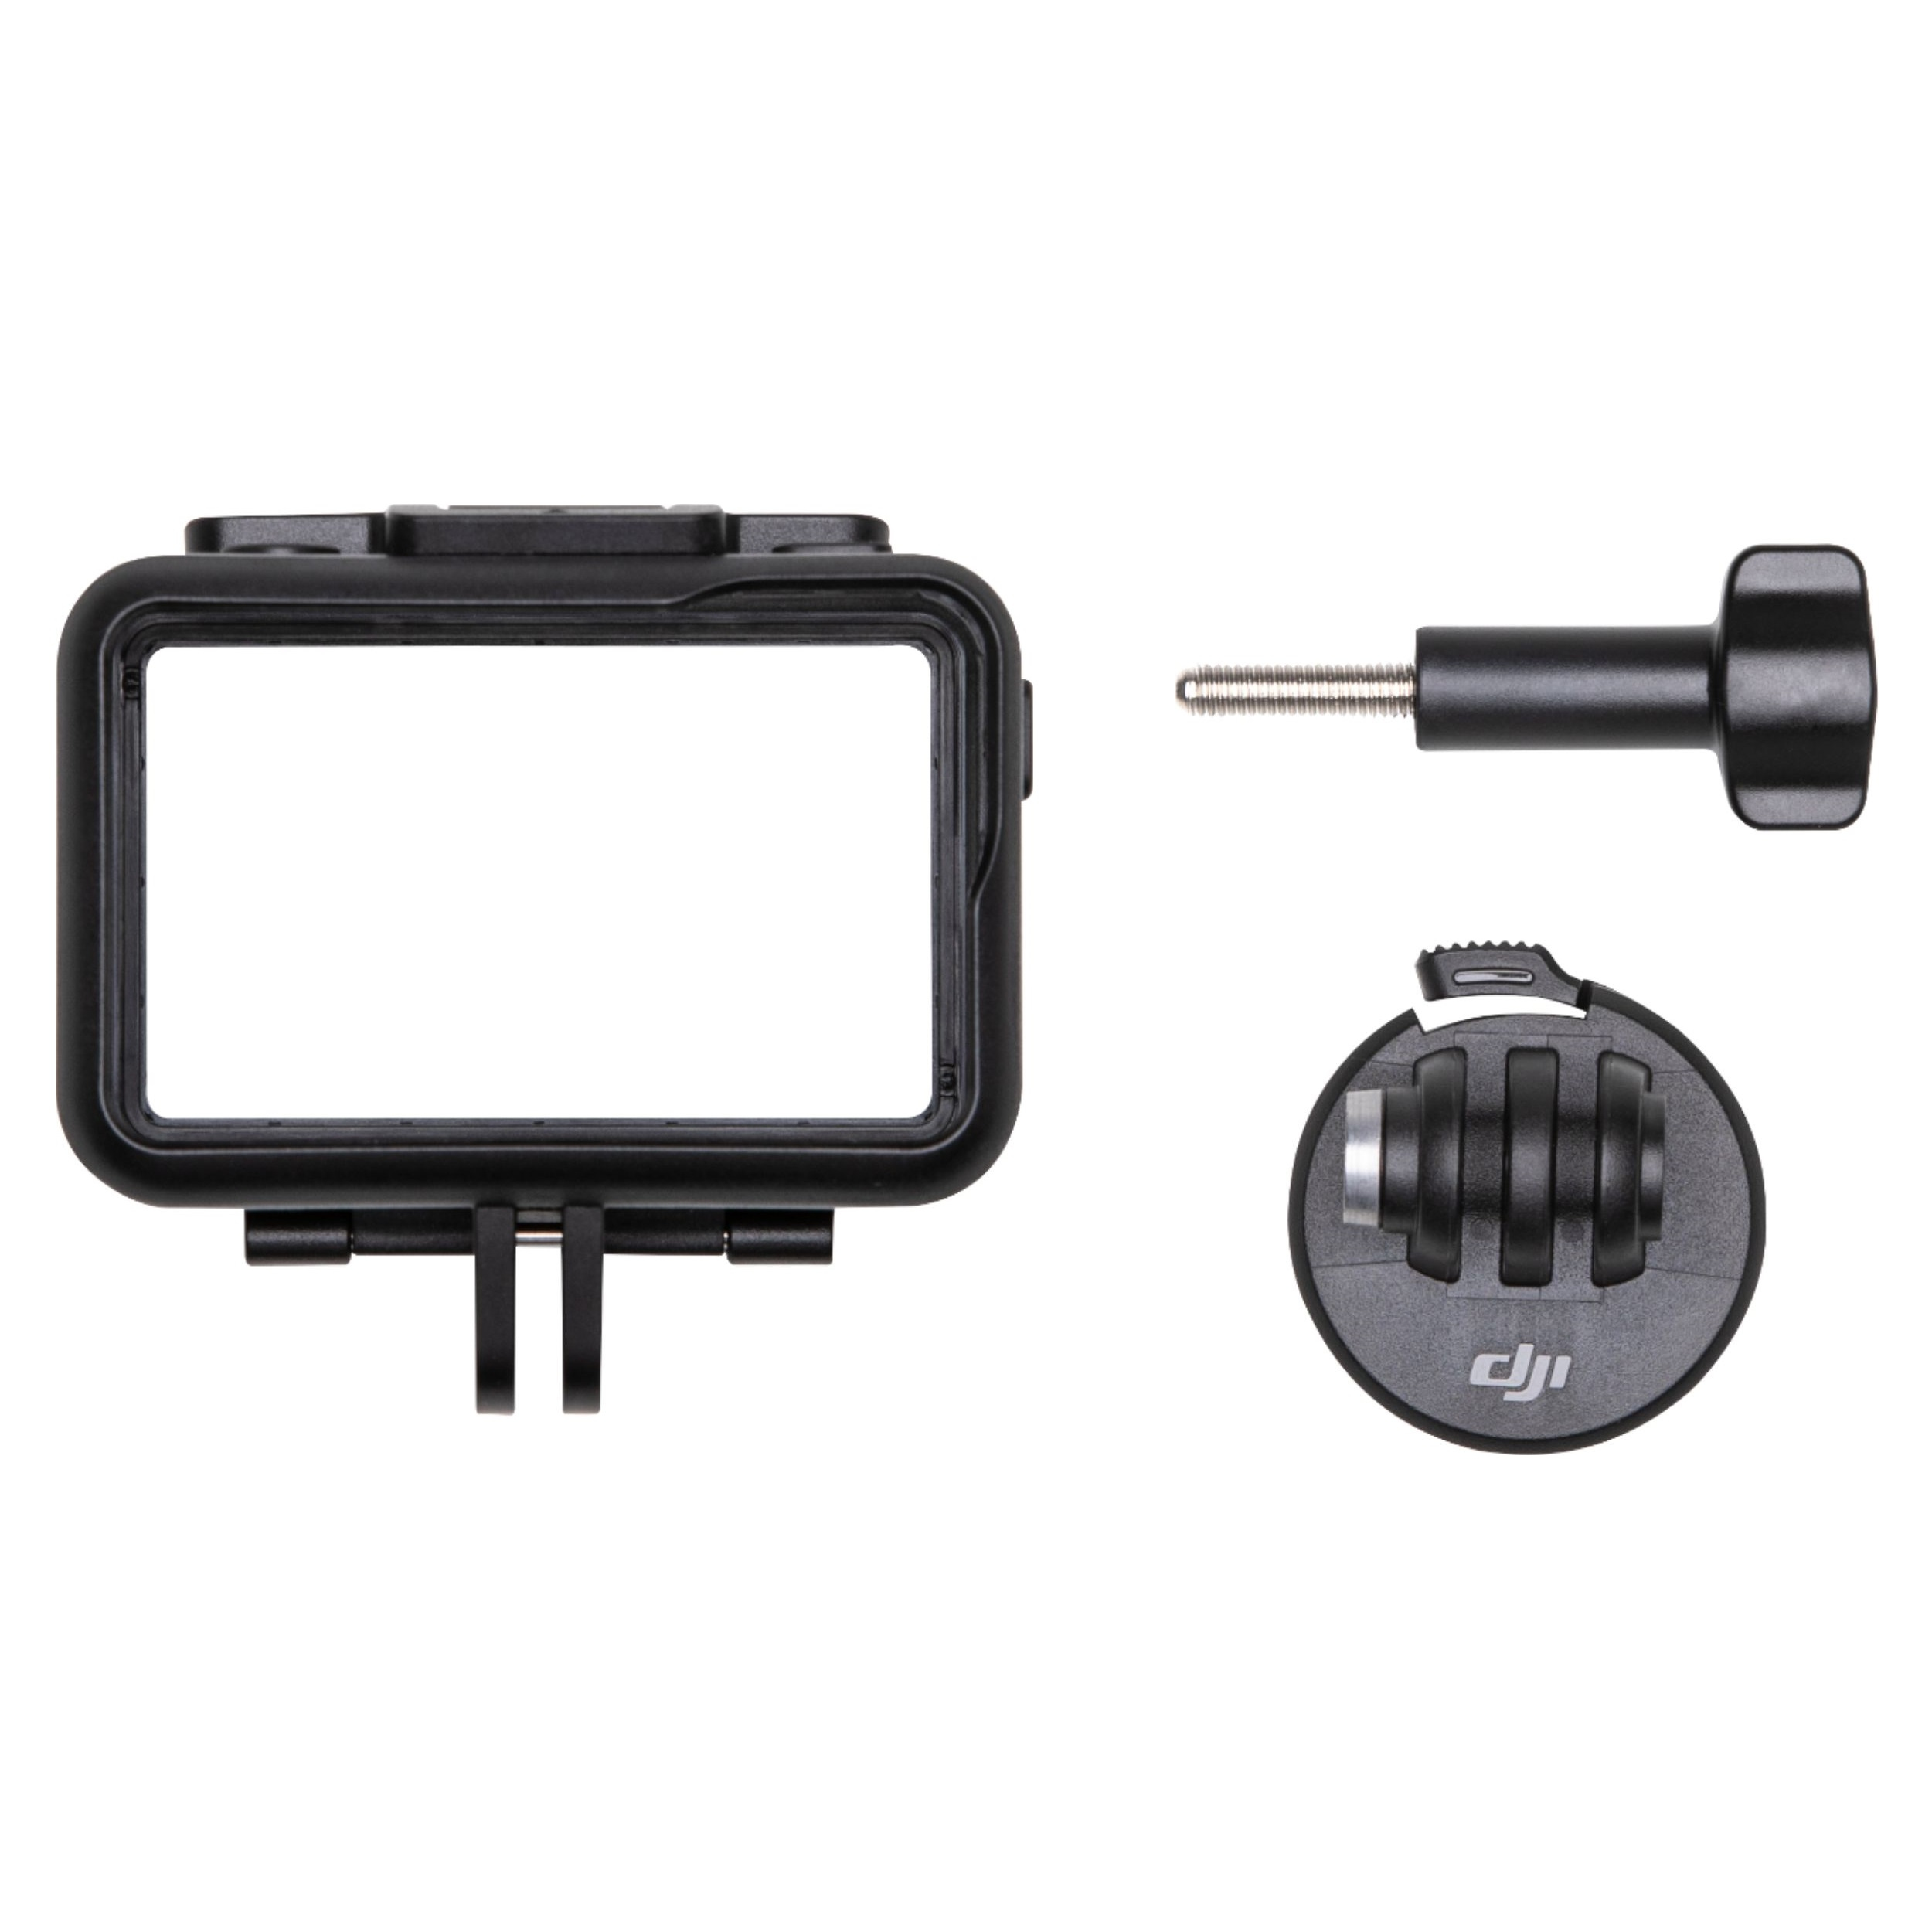 DJI Osmo Action Part 8 Camera Frame Kit CP.OS.00000032.01 - CMS01